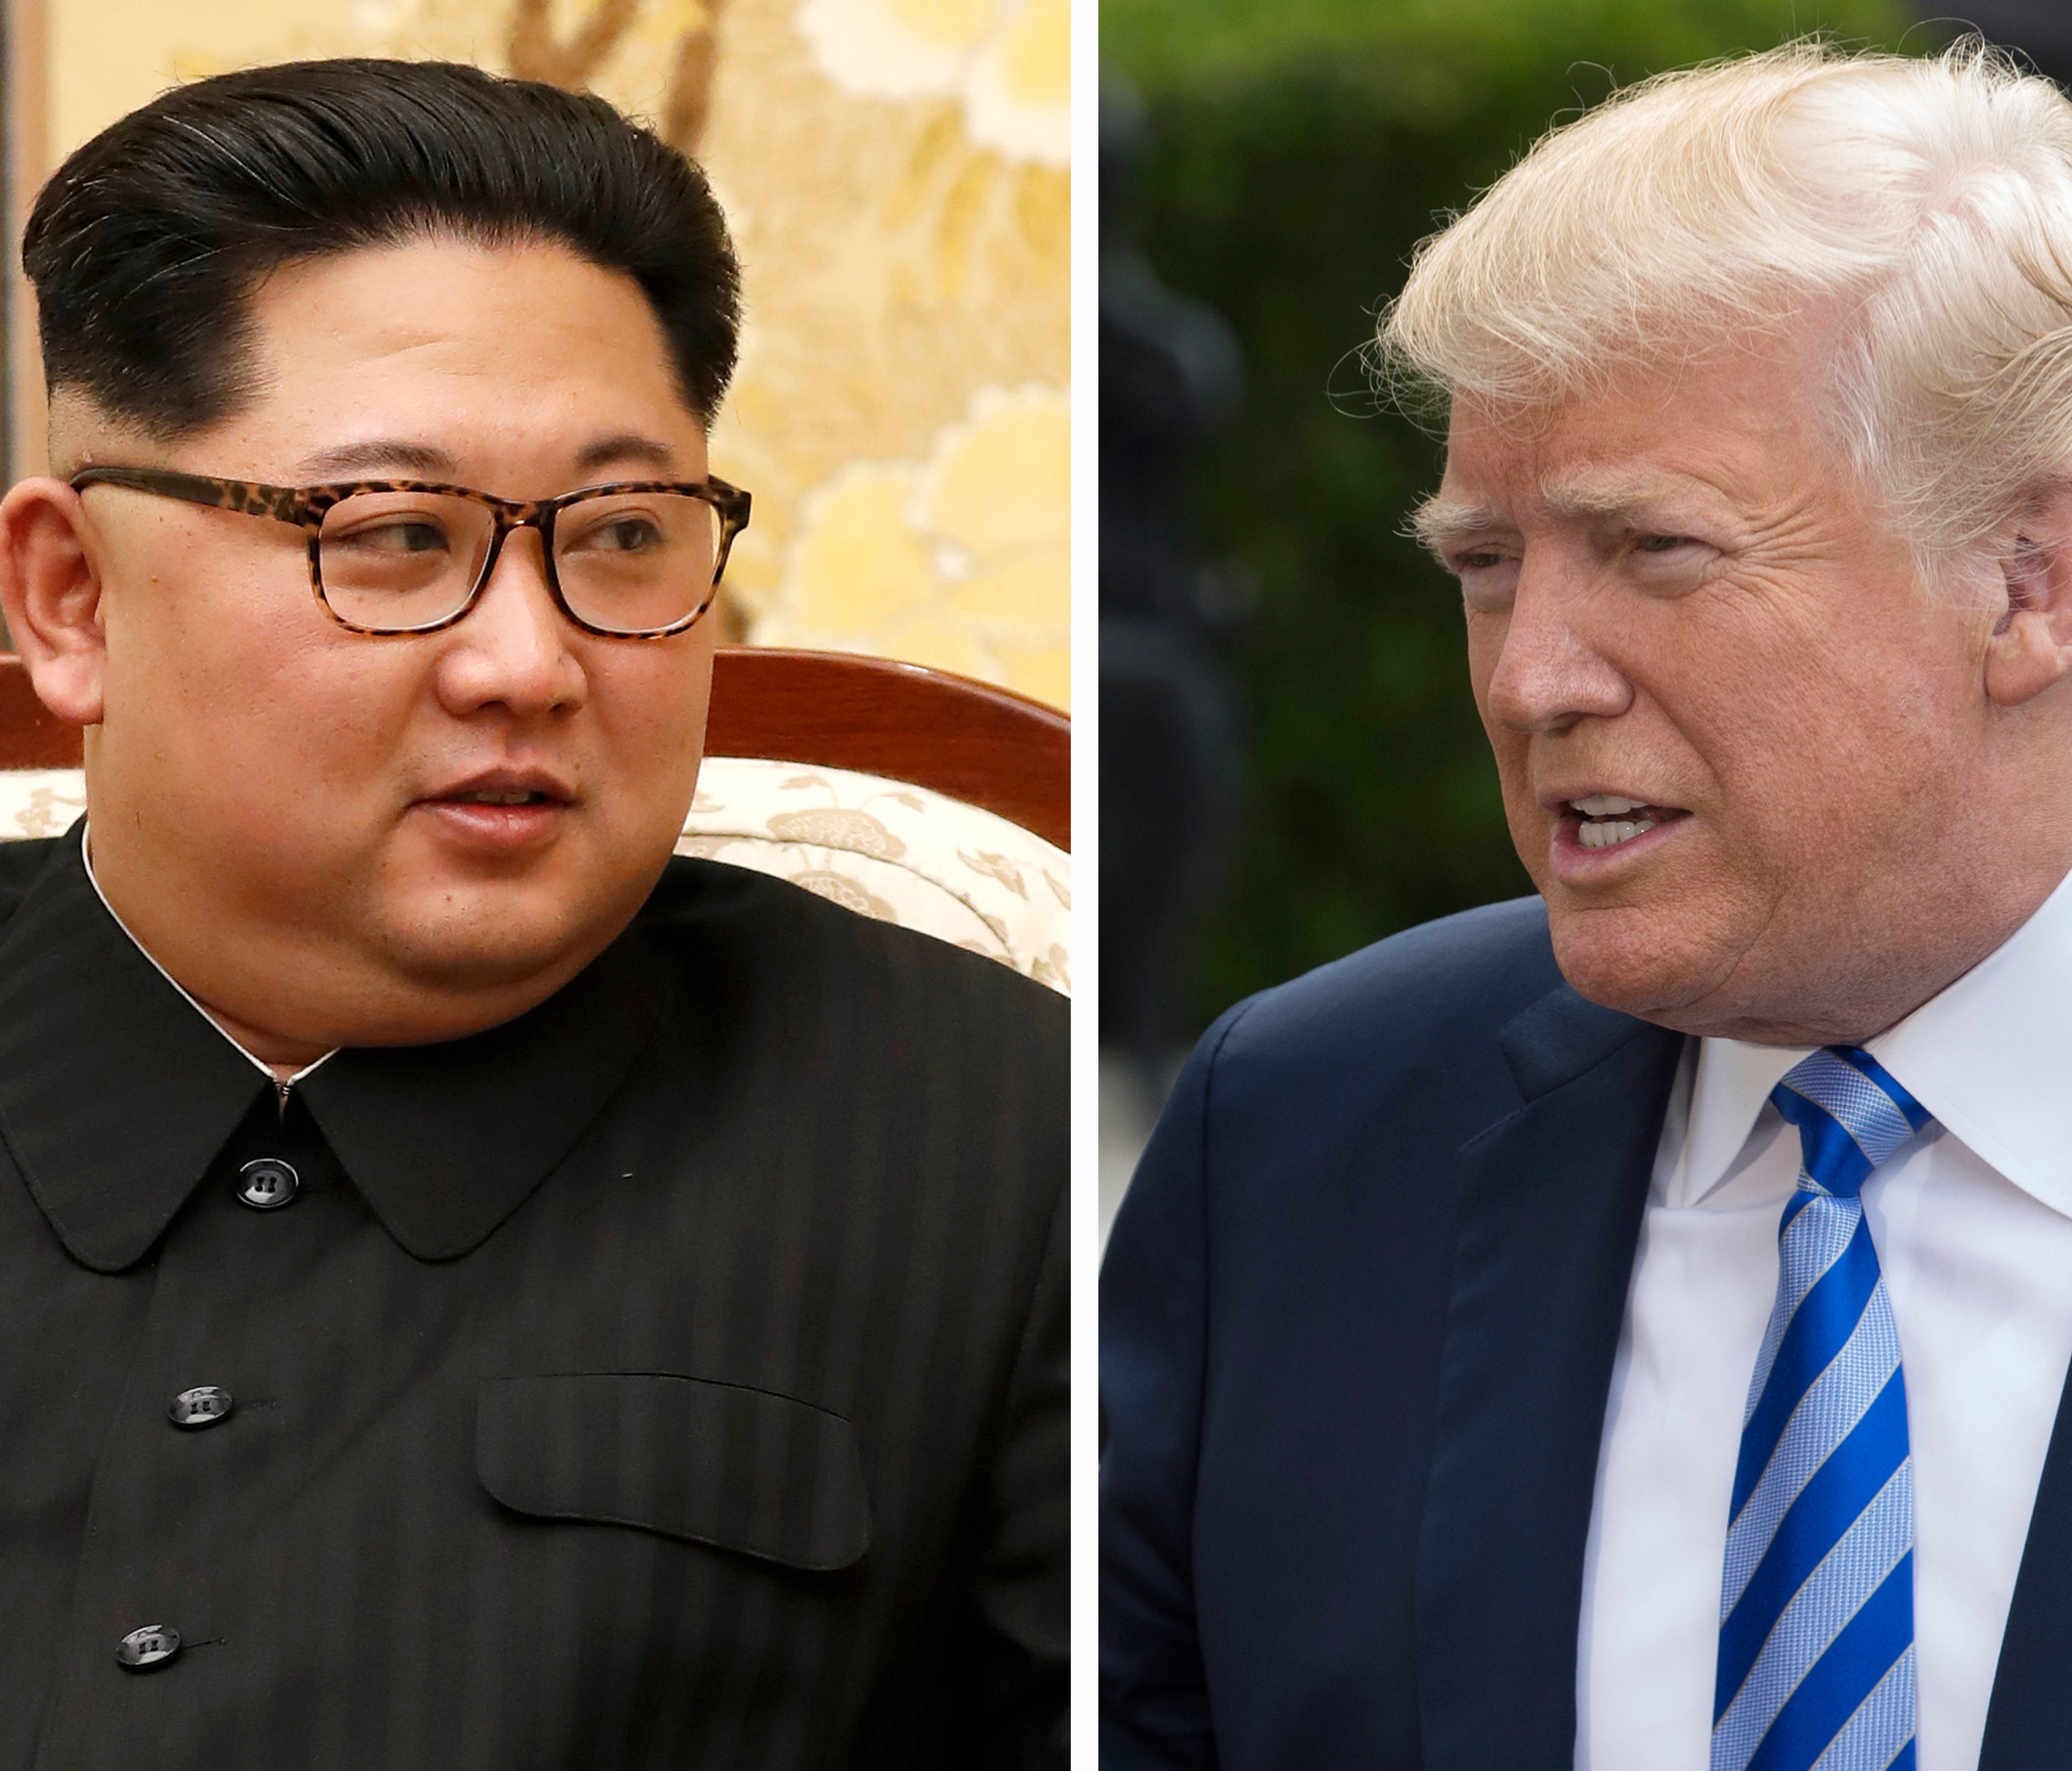 North Korea leader Kim Jong Un (left) and President Trump (right).